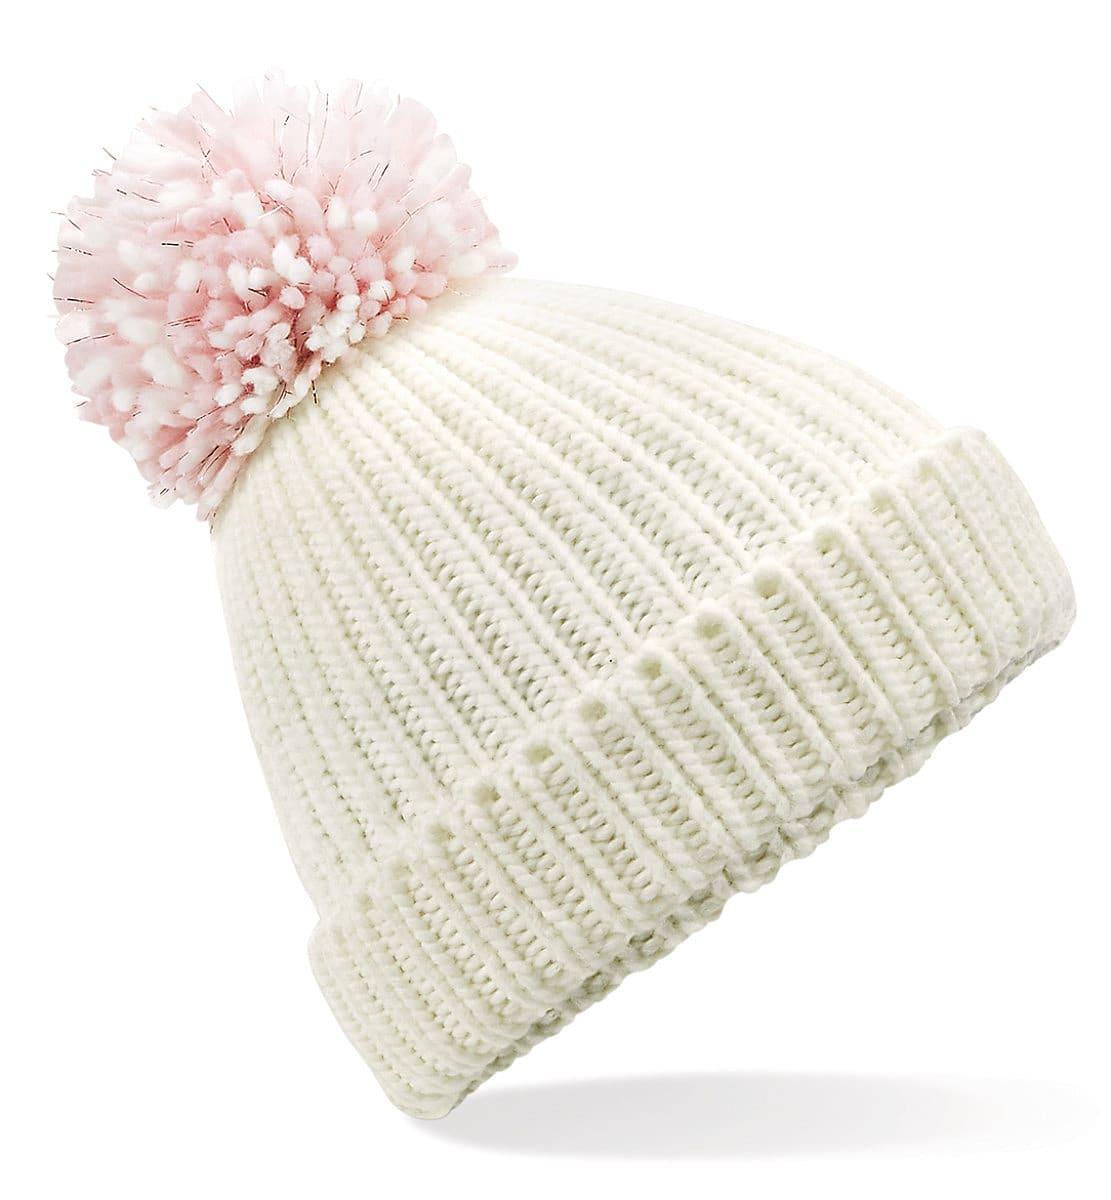 Beechfield Shimmer Pom Pom Beanie Hat in Off-White / Pastel Pink (Product Code: B409)